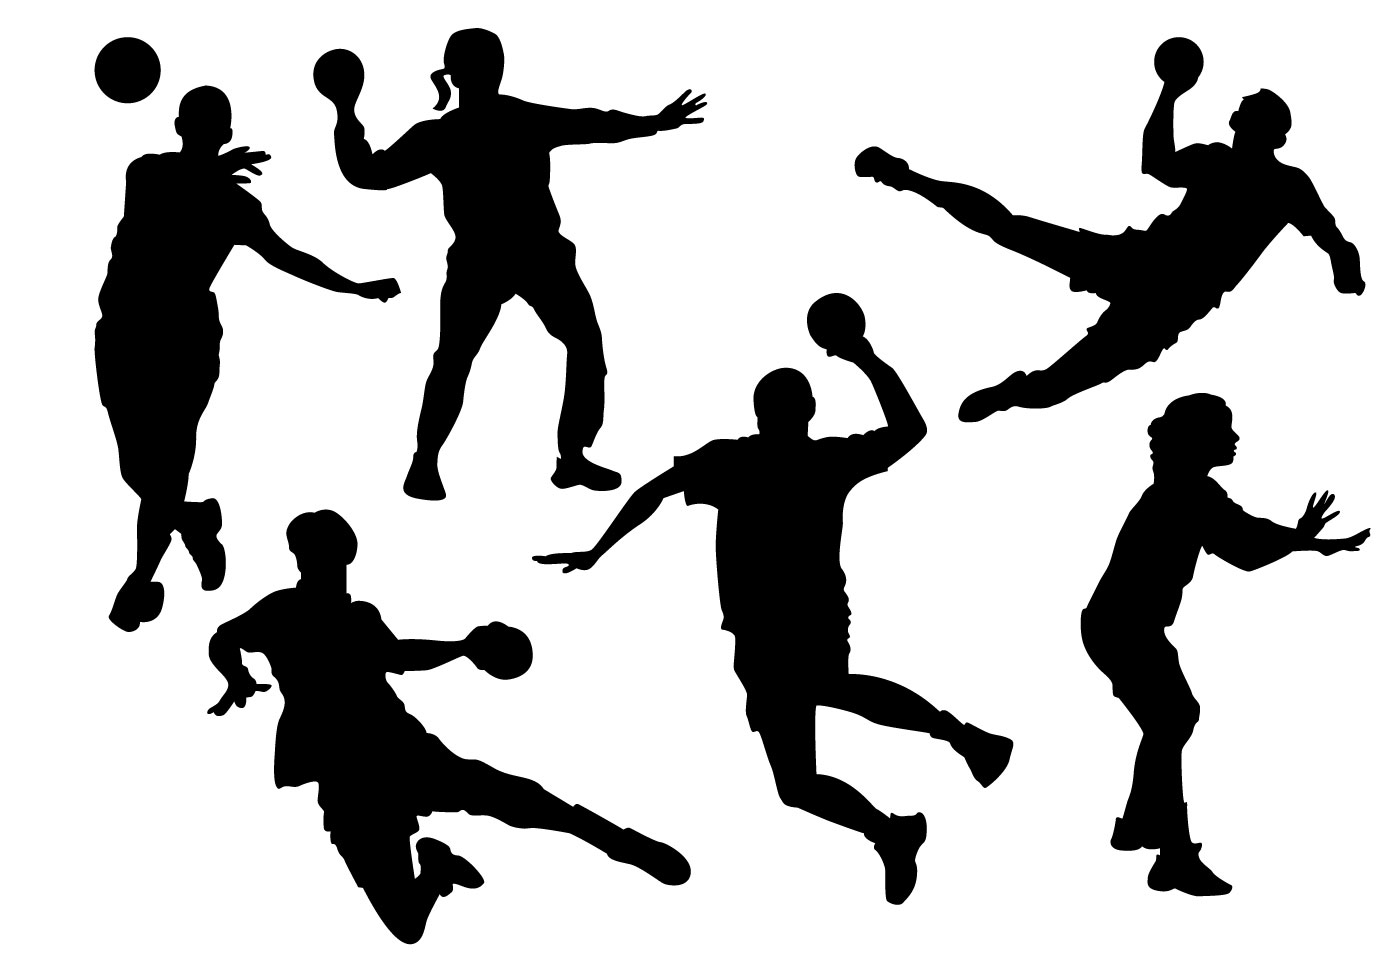 Free Handball Players Silhouette Vector - Download Free ...